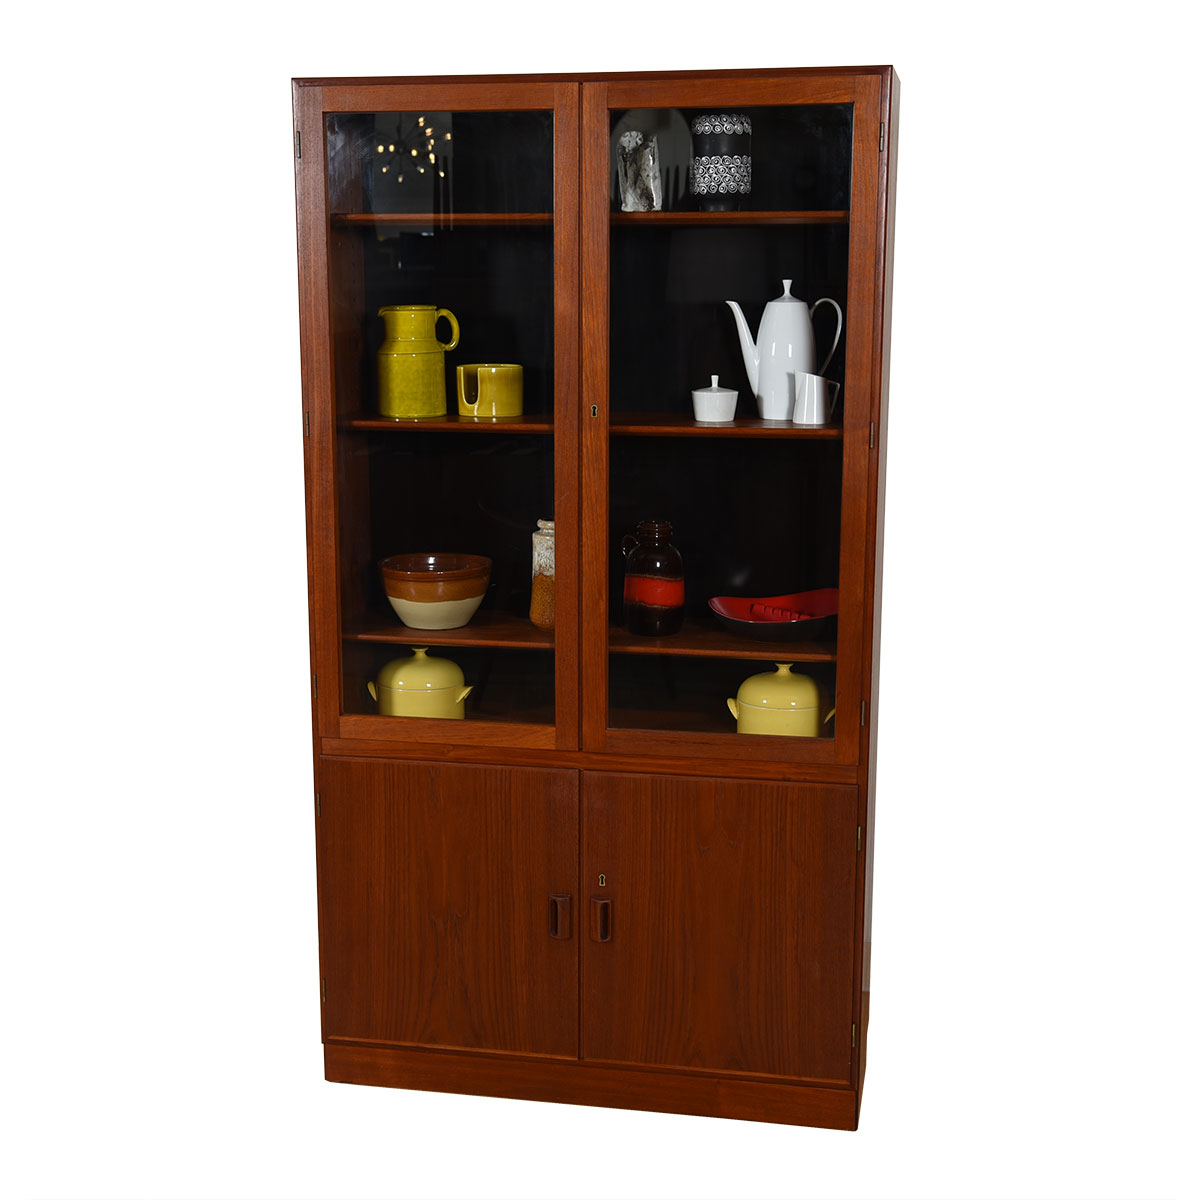 Danish Modern Teak Tall Display / Storage Cabinet by Borge Mogensen